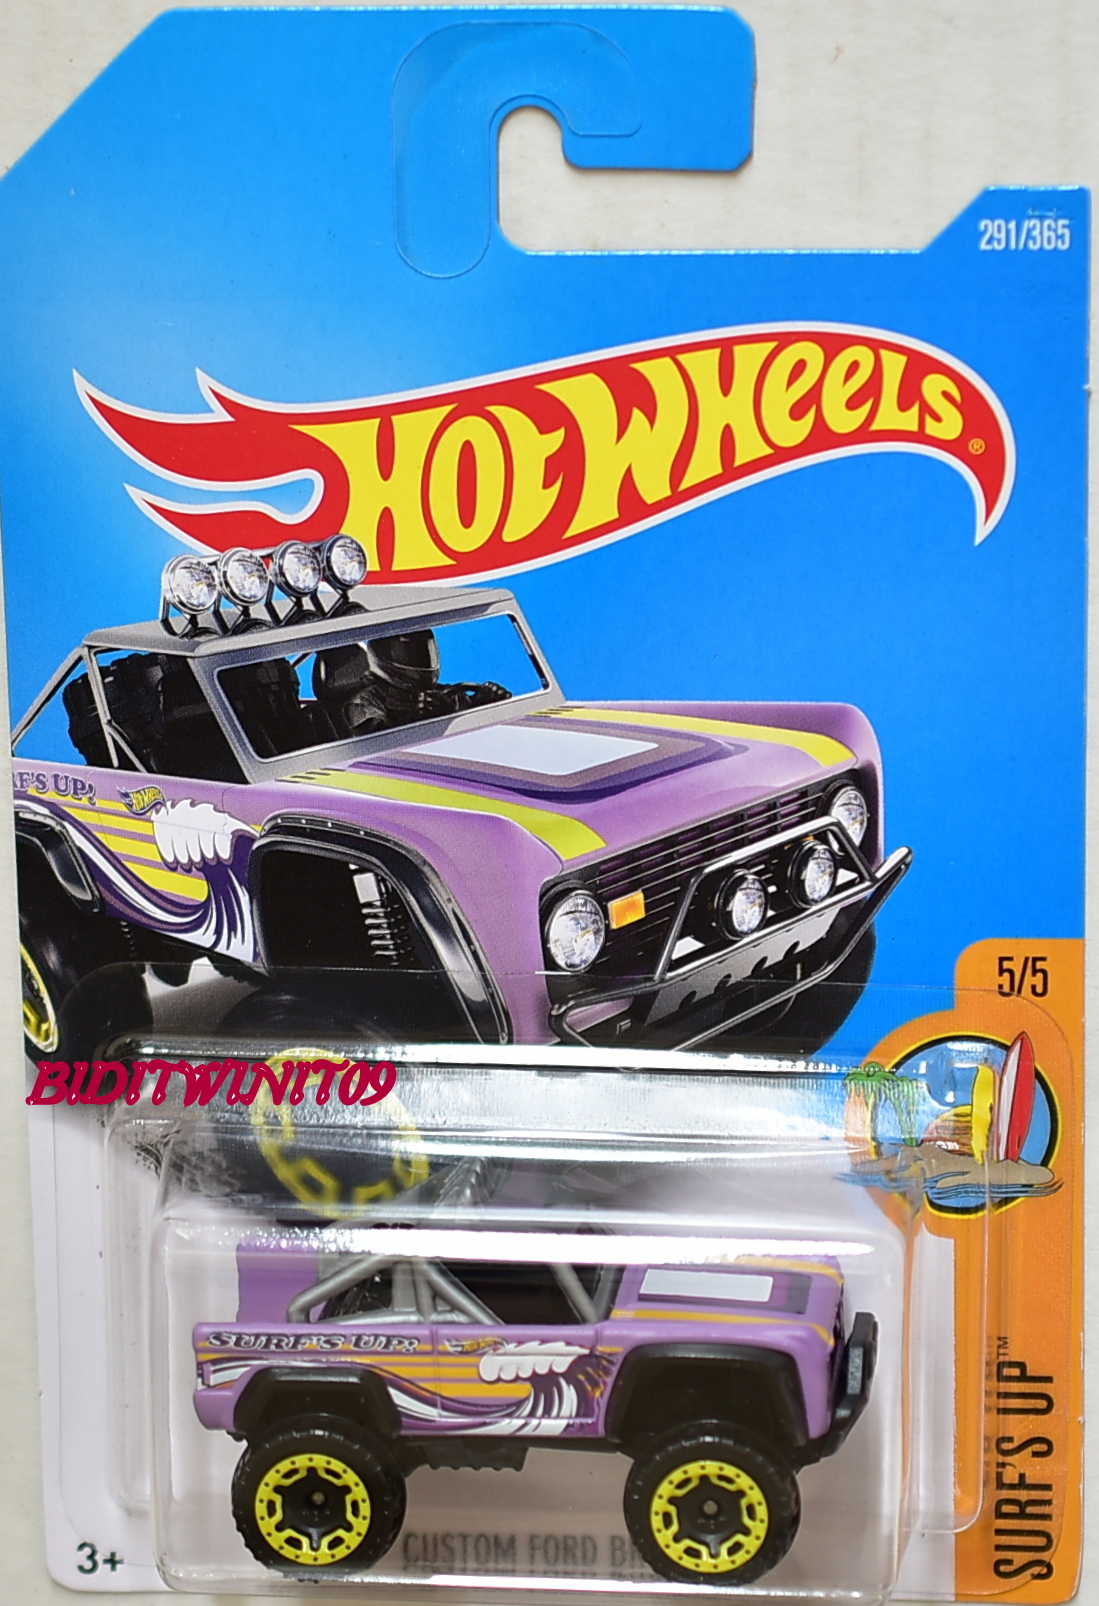 HOT WHEELS 2017 SURF'S UP CUSTOM FORD BRONCO #5/5 PURPLE